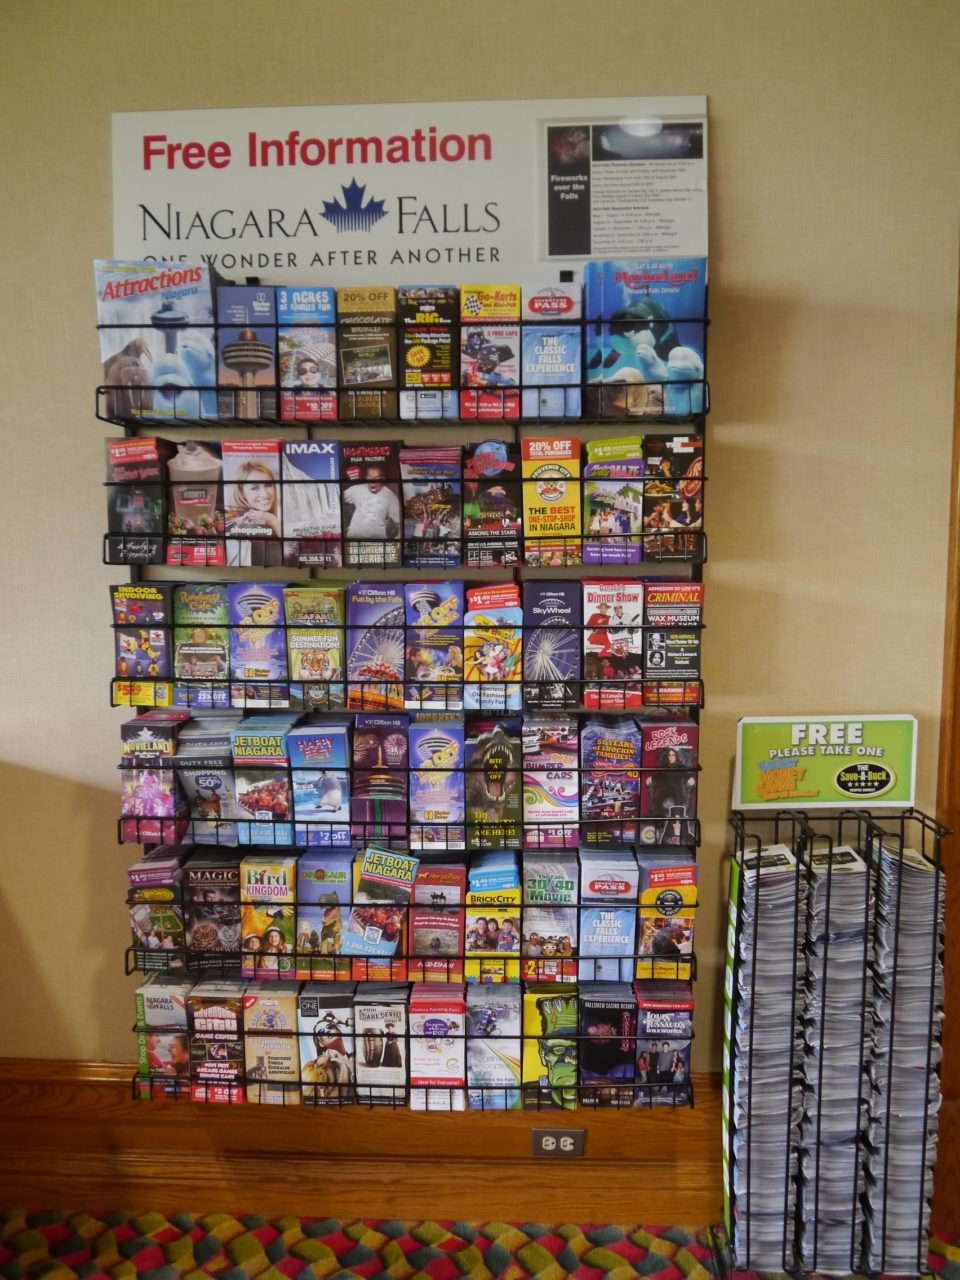 Niagara falls tourism coupons